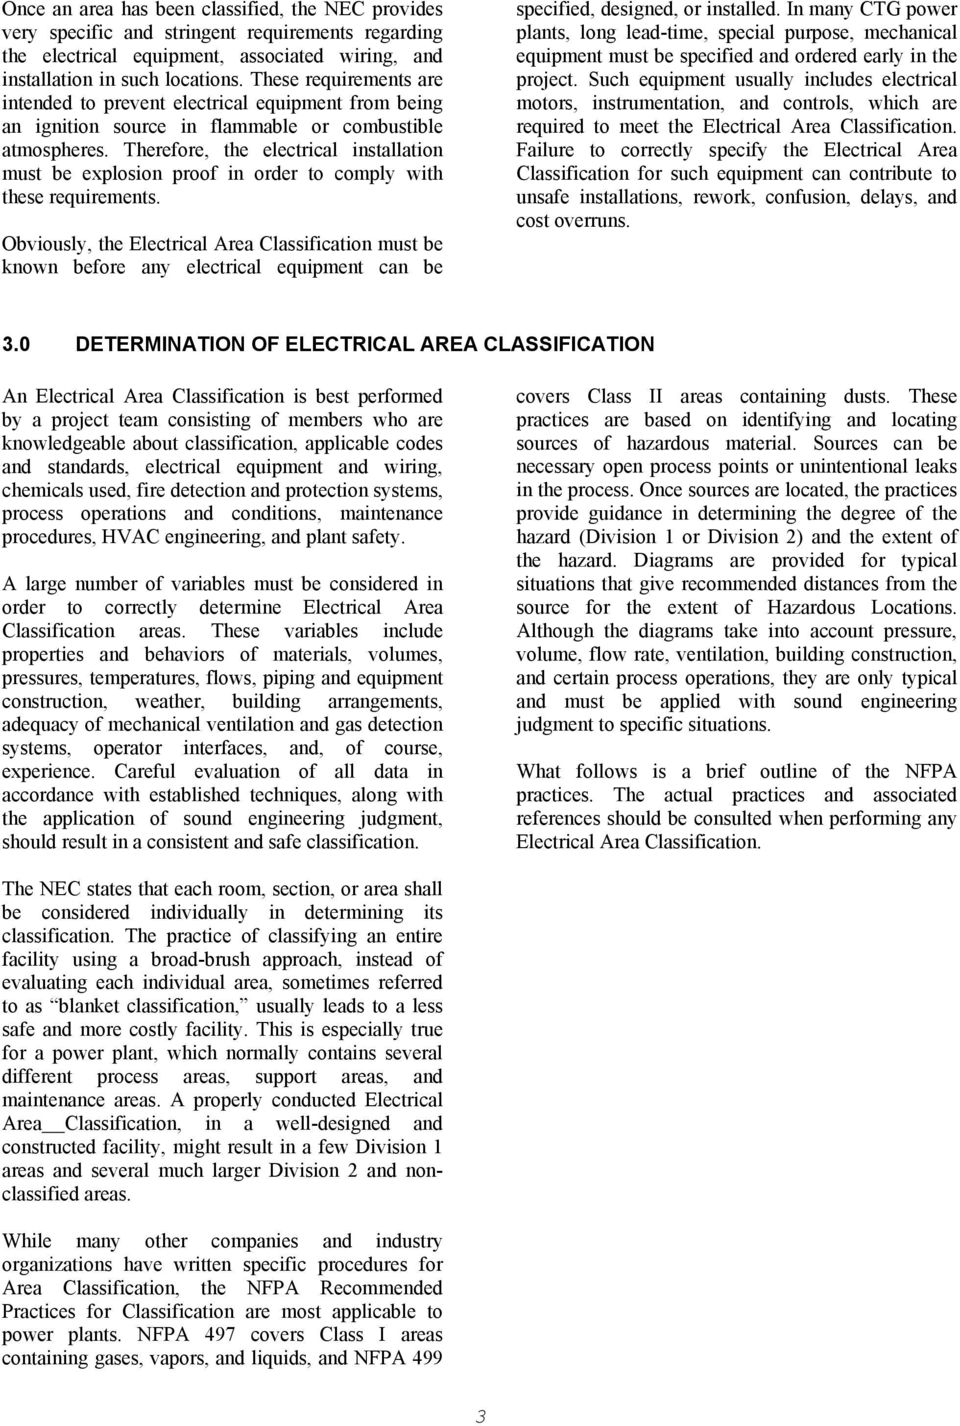 Practical Guidelines for Electrical Area Classification in ...